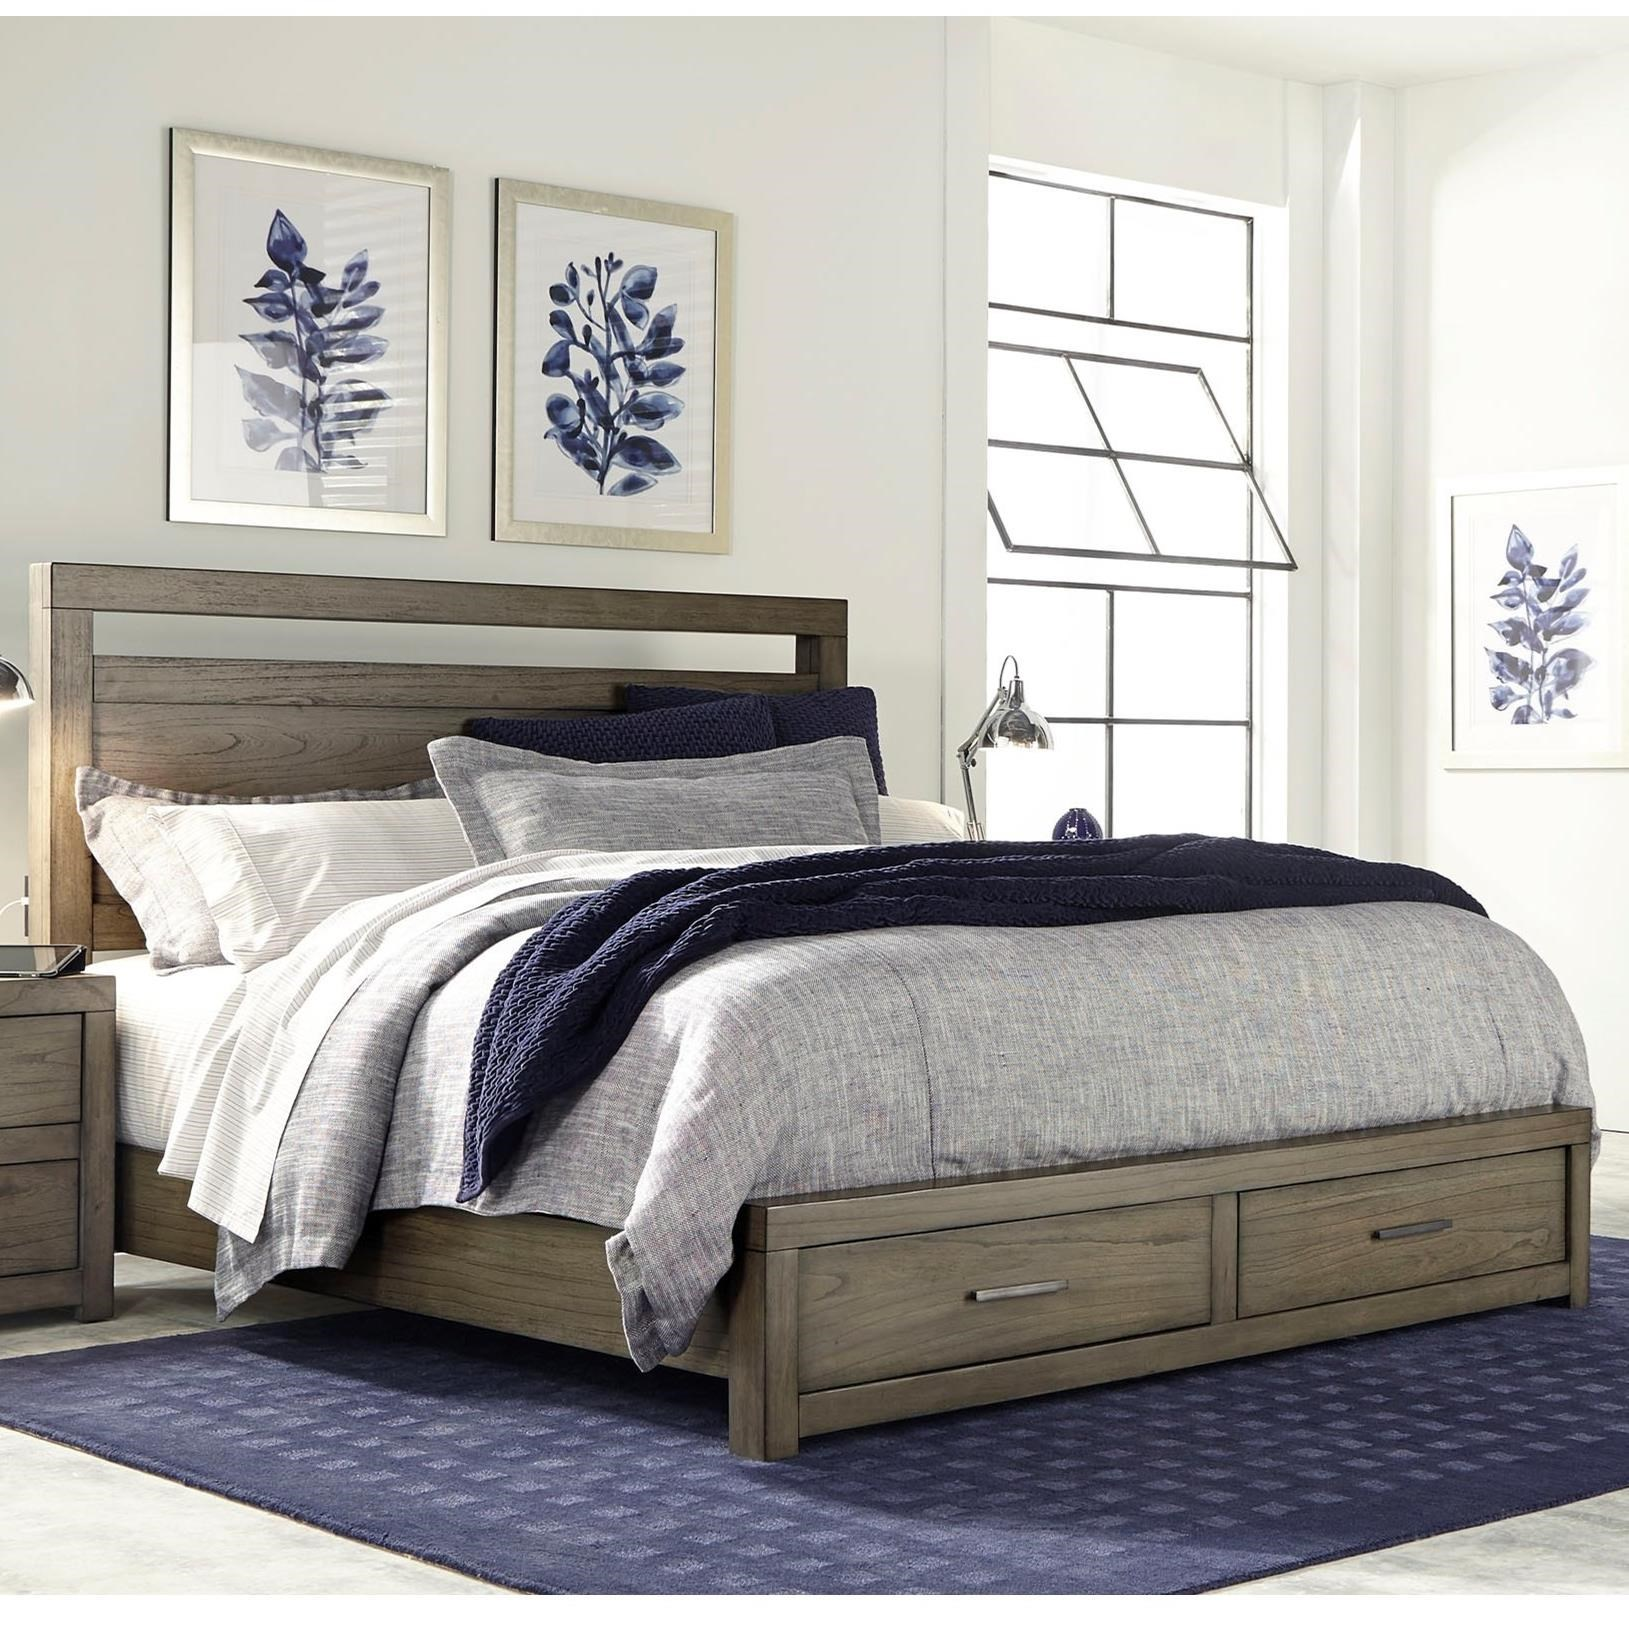 Modern Loft King Panel Storage Bed by Aspenhome at Darvin Furniture